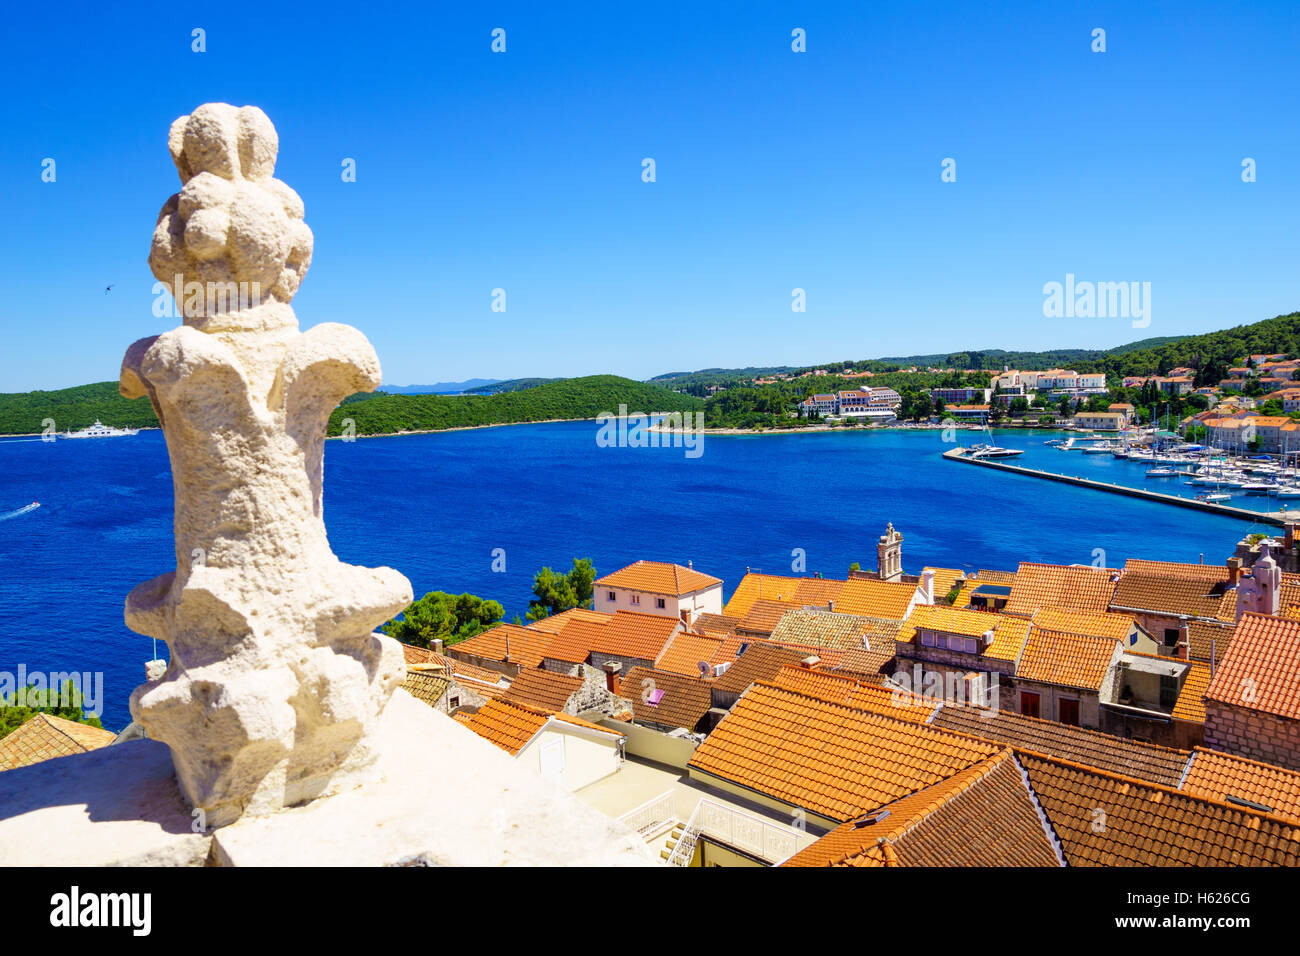 Rooftop view of the old town of Korcula, with roofs, houses and boats, in Dalmatia, Croatia Stock Photo